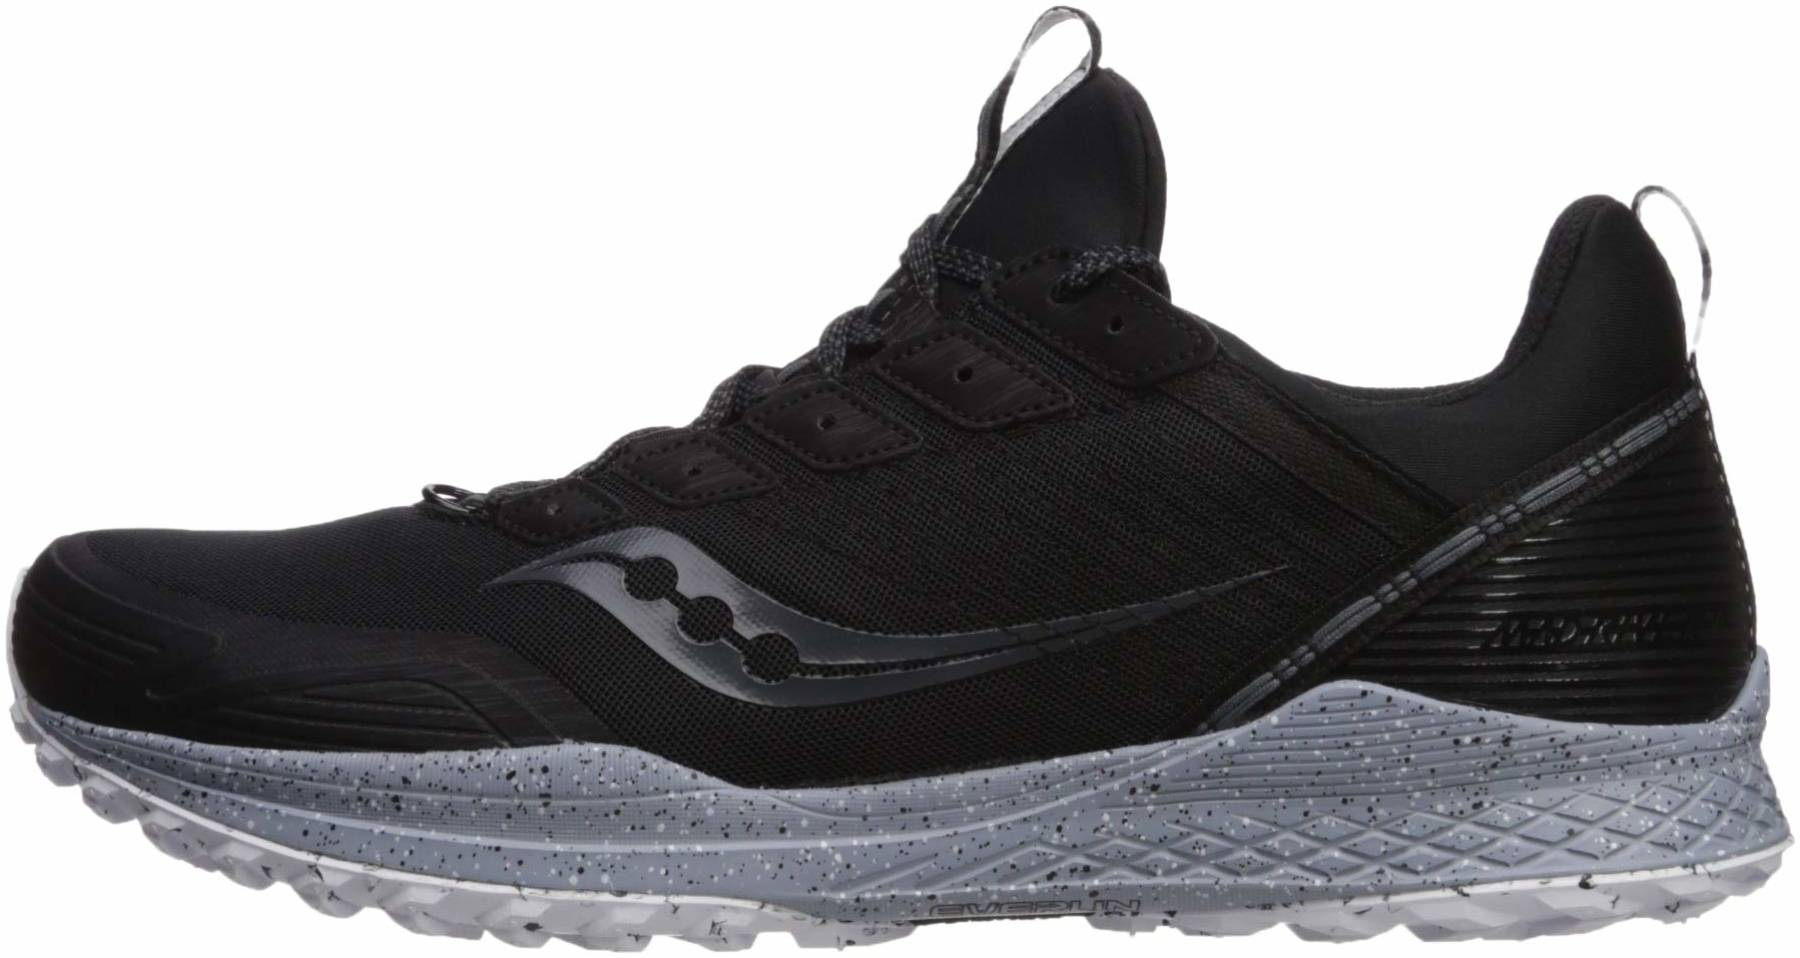 Save 40% on Saucony Trail Running Shoes